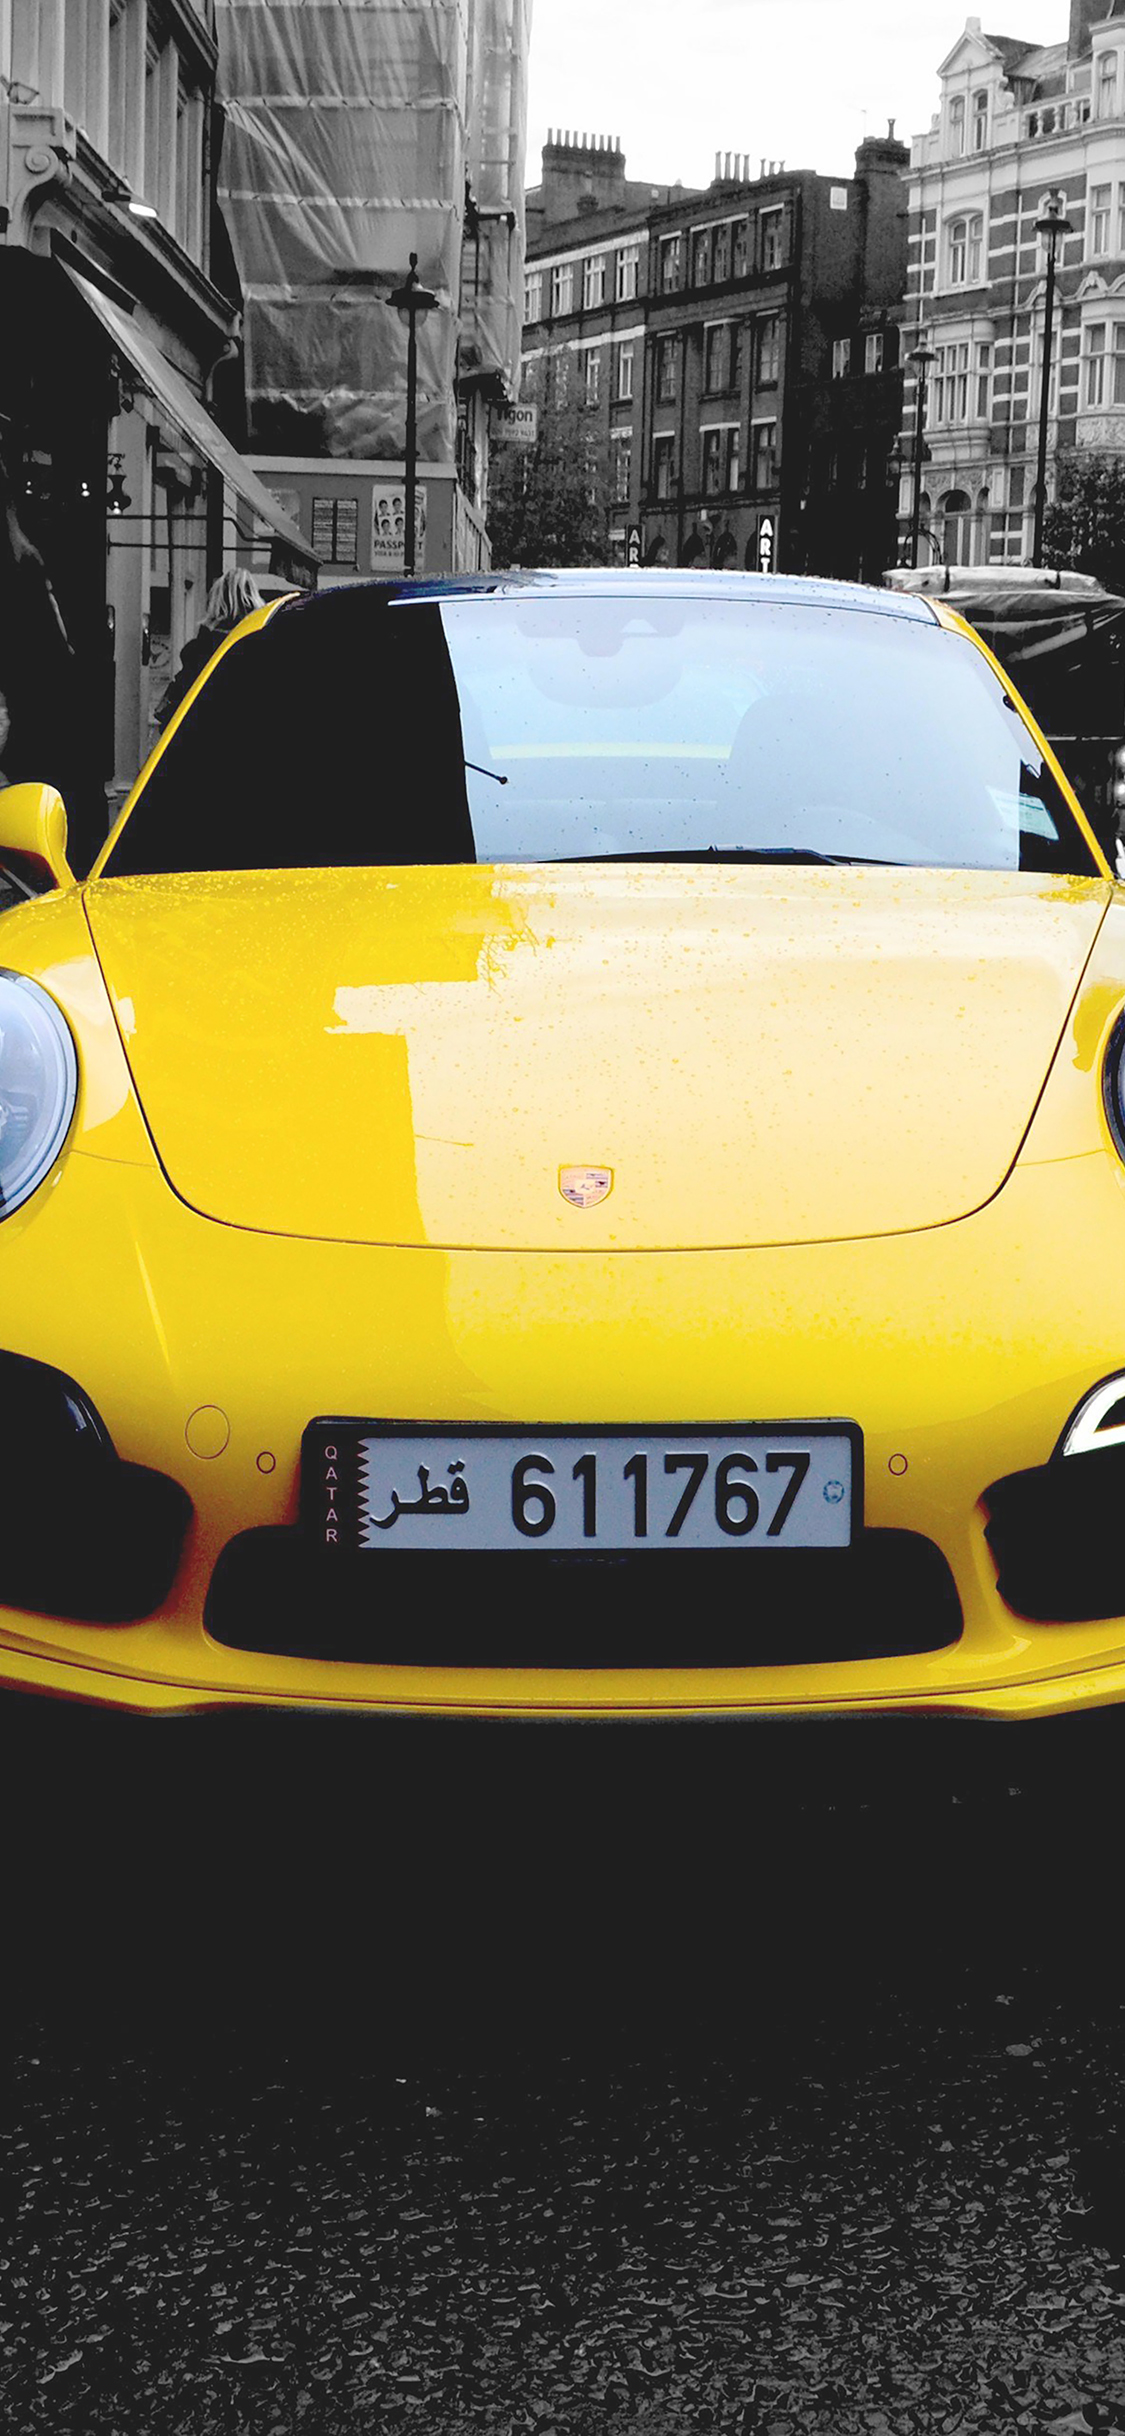 iPhoneXpapers.com-Apple-iPhone-wallpaper-mk71-porche-street-car-city-bw-yellow